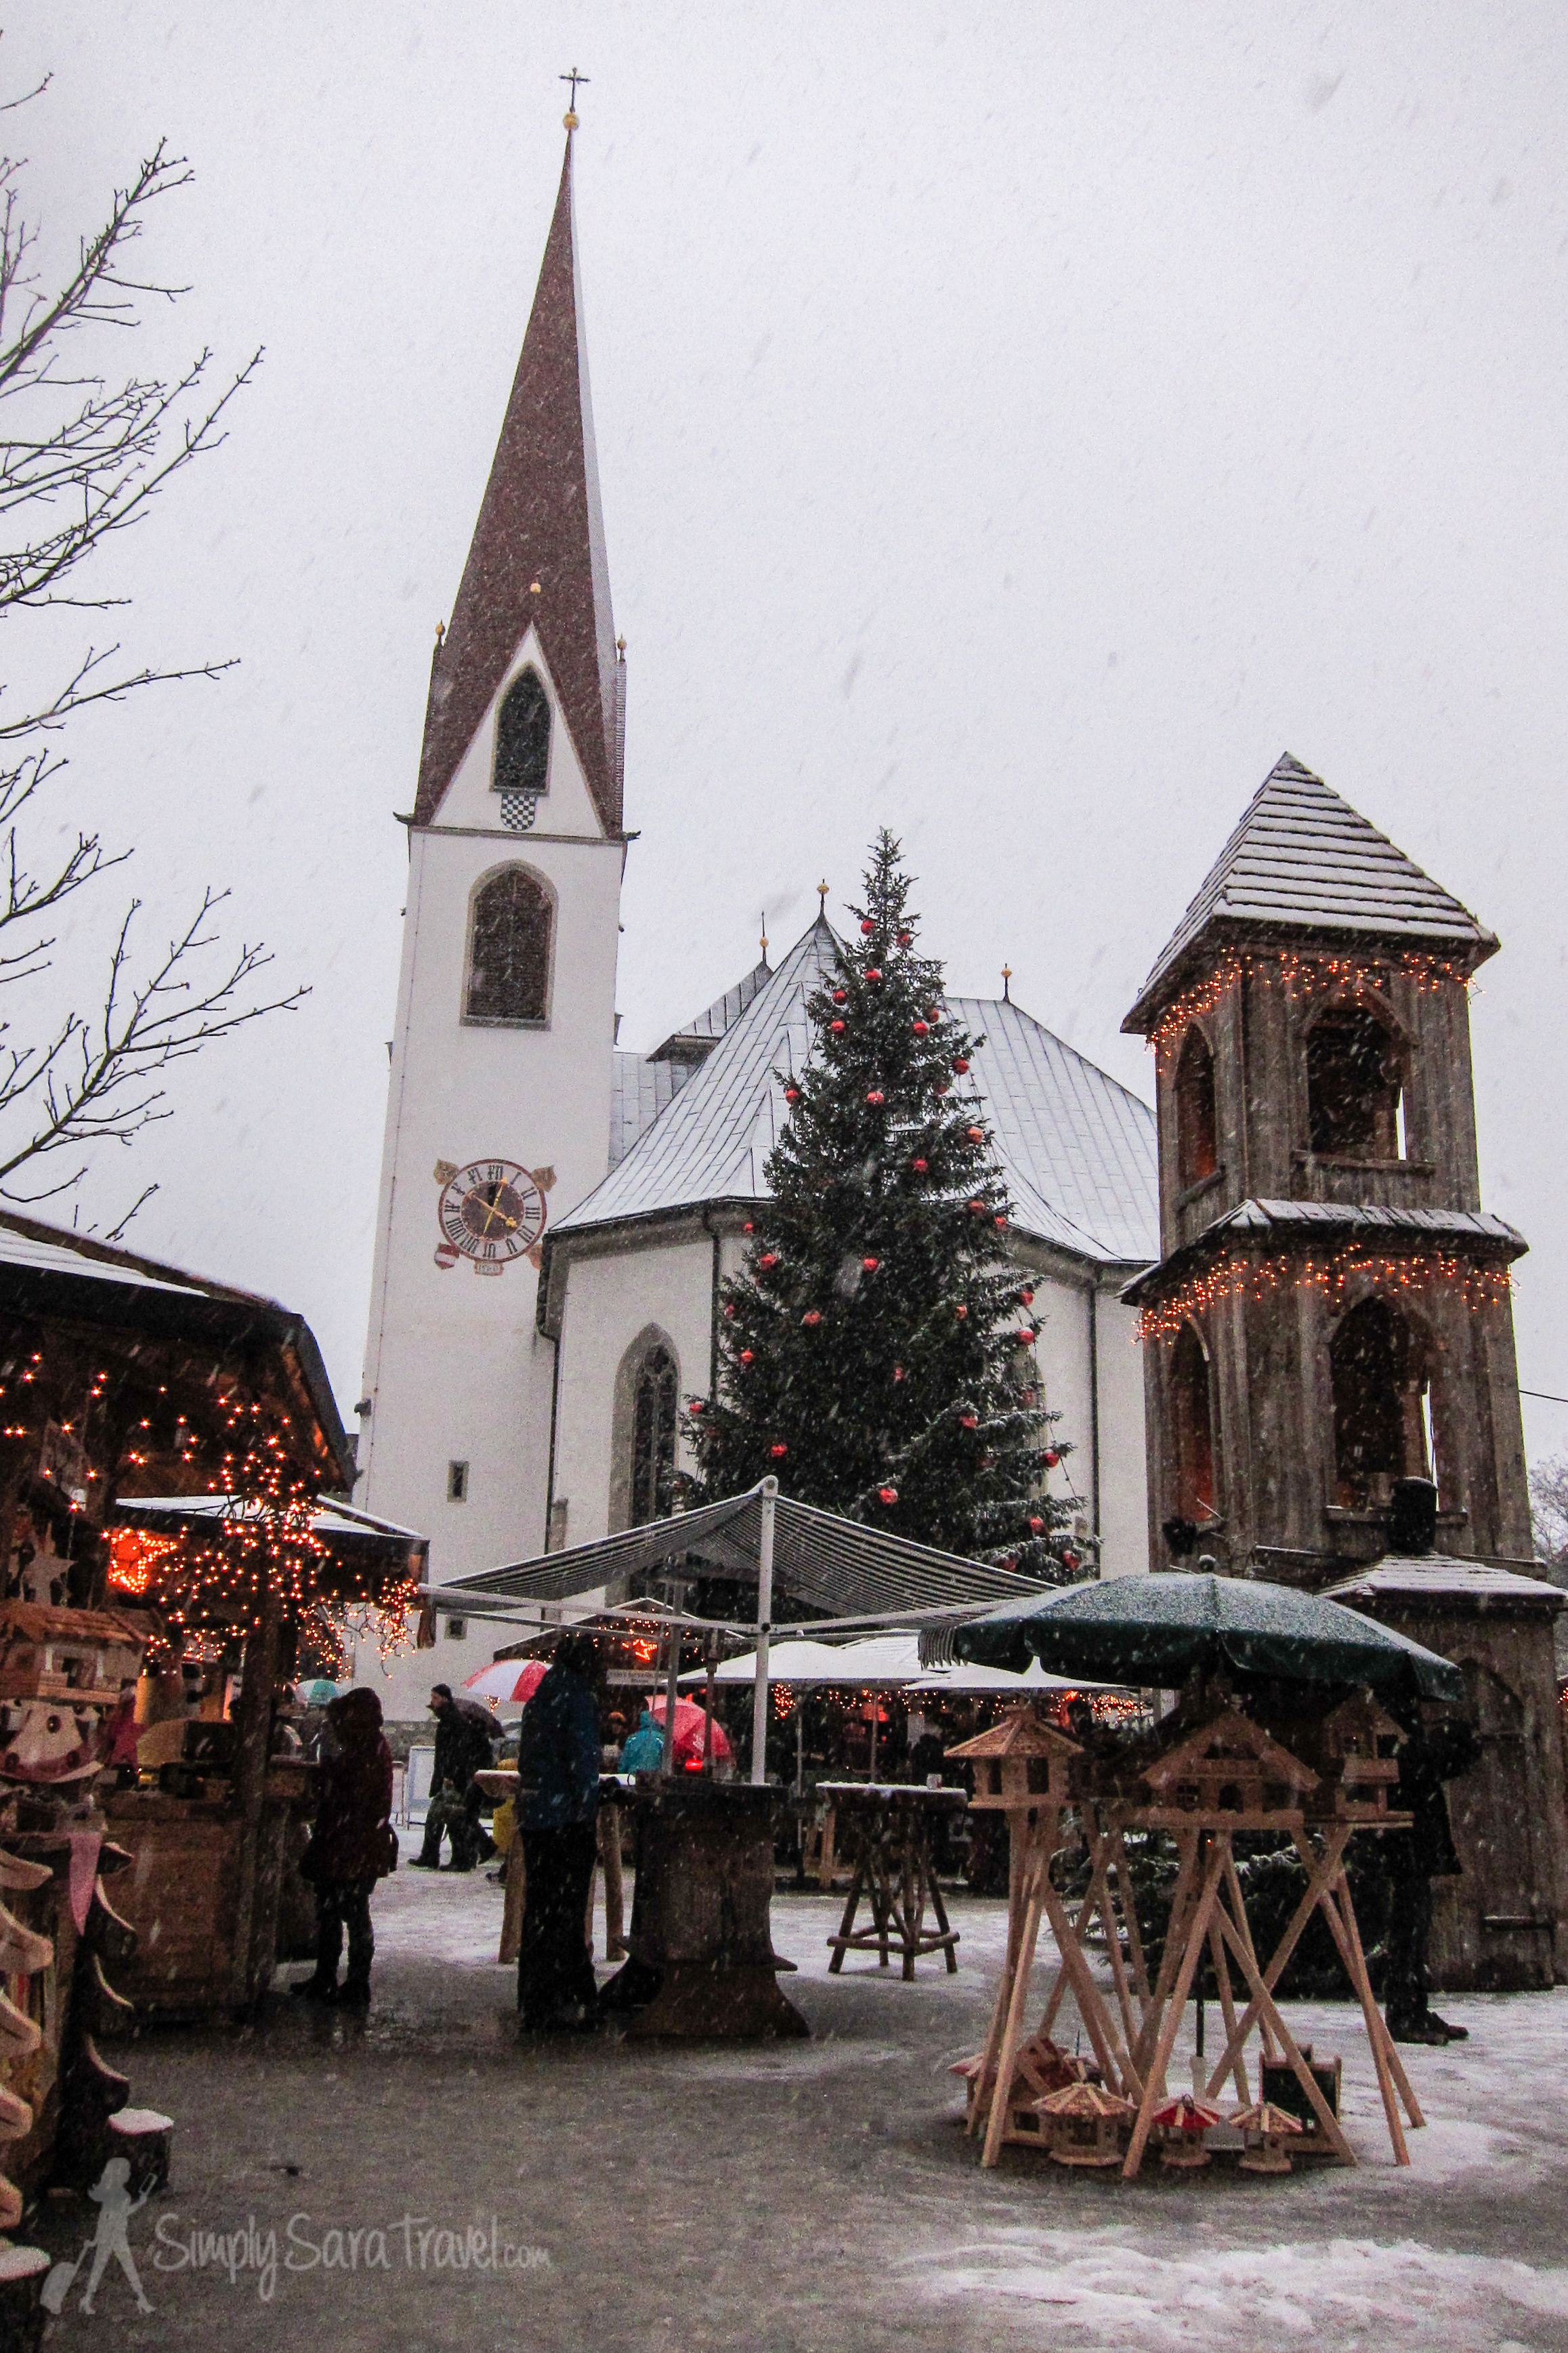 The Christmas market in Seefeld withSt. Oswald's church in the background